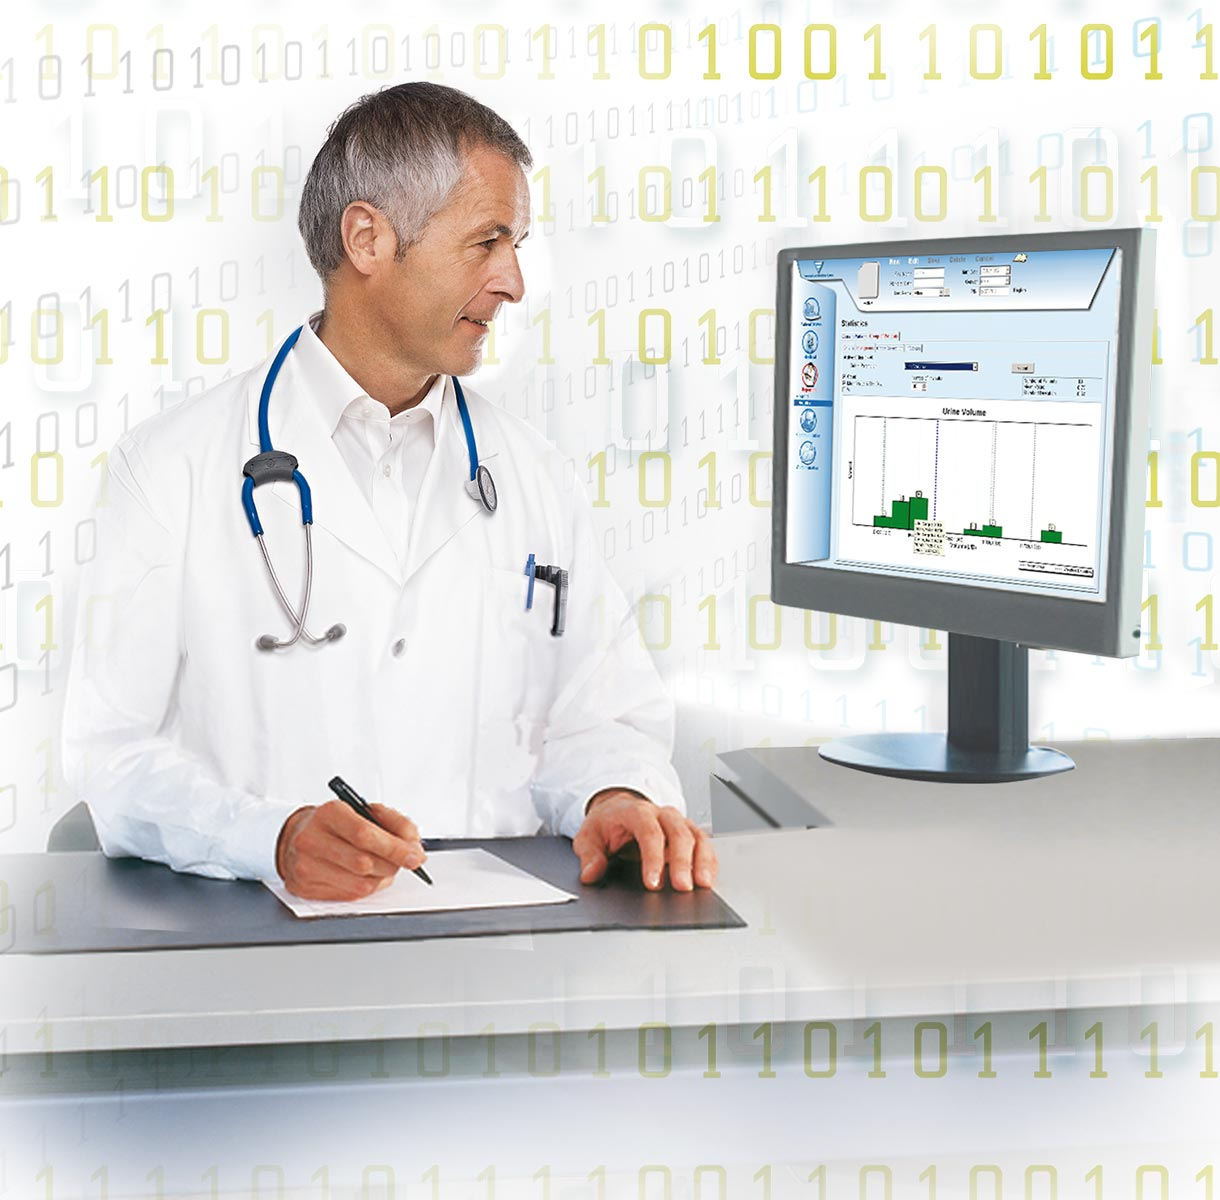 Physician looking at monitor data